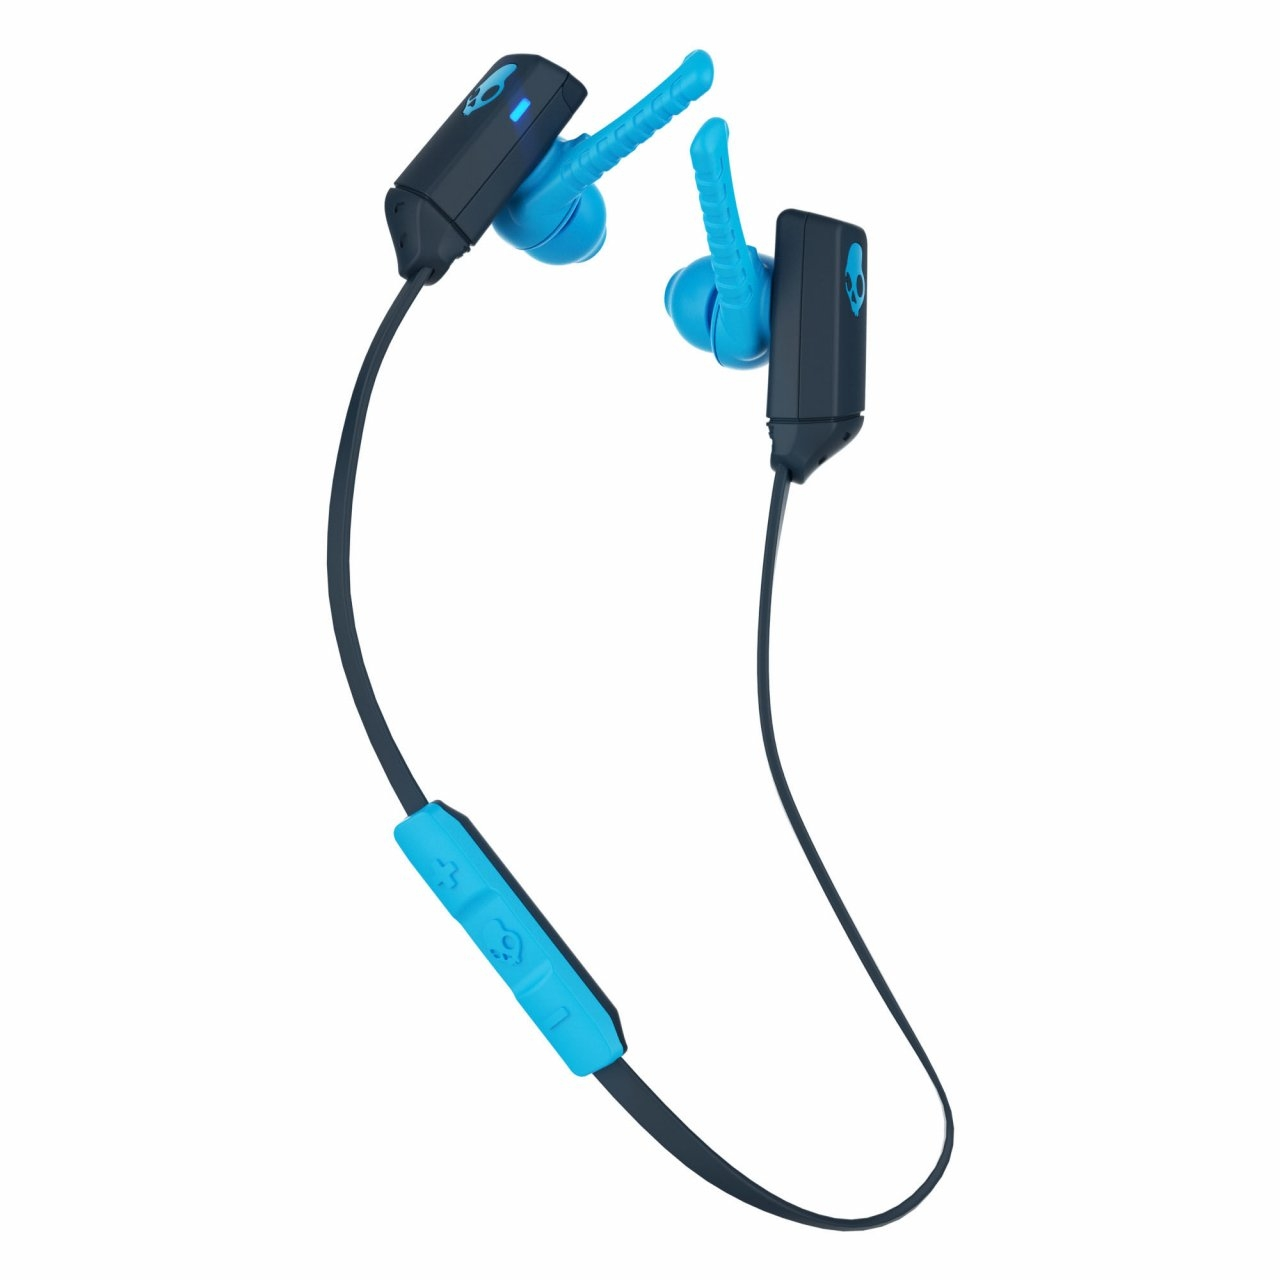 skullcandy earbud wiring diagram Download-1280x1280 1500 2871 13-a